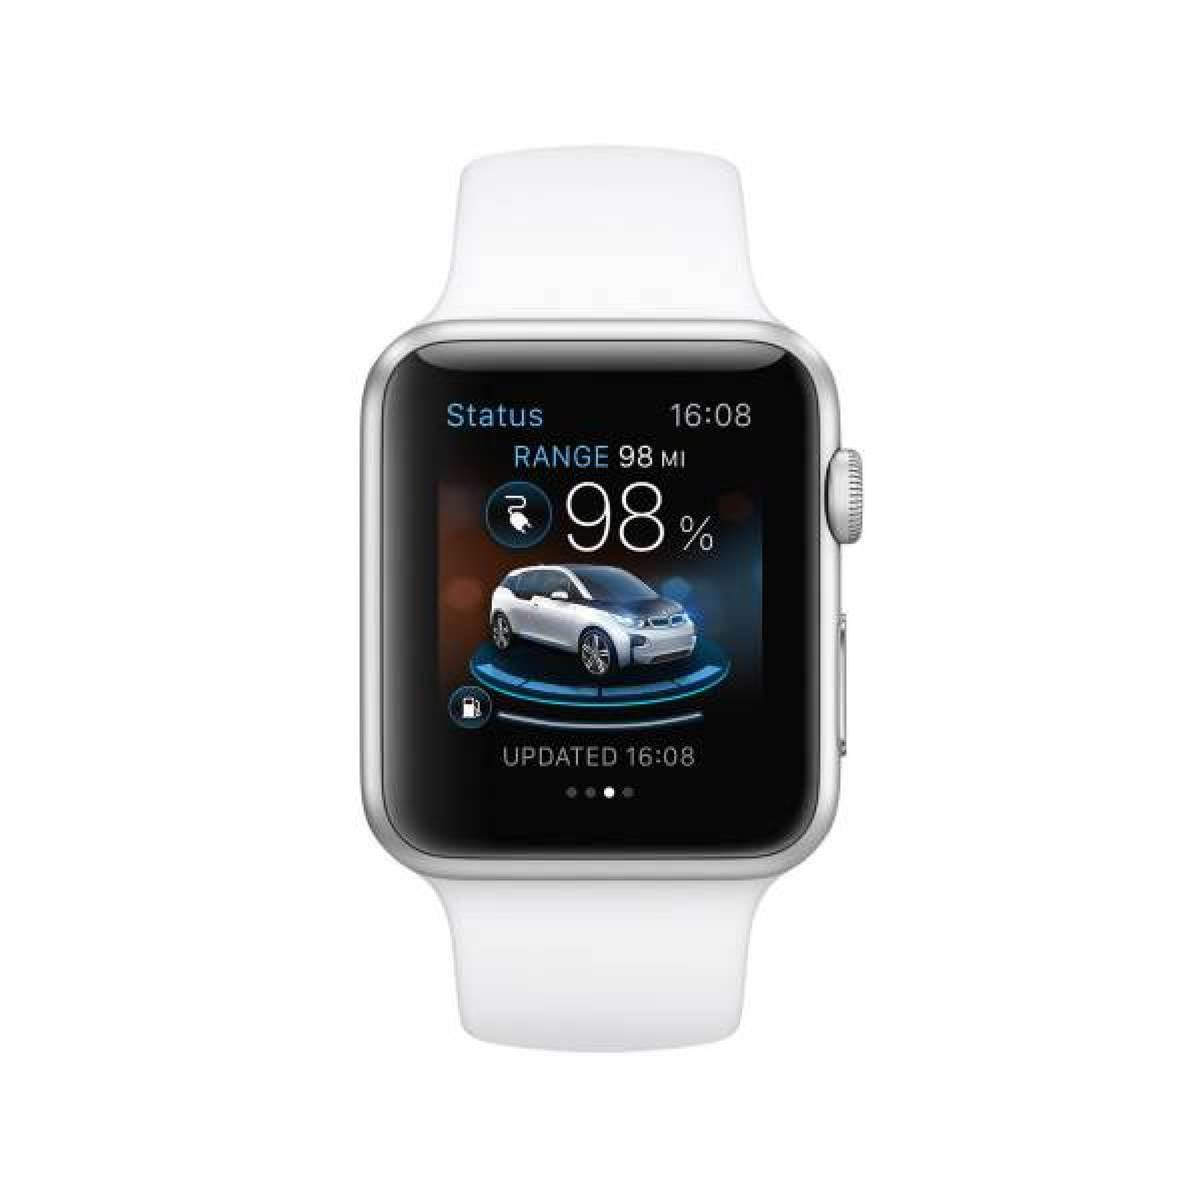 Cars Are Becoming Devices with Apple Watch Apps